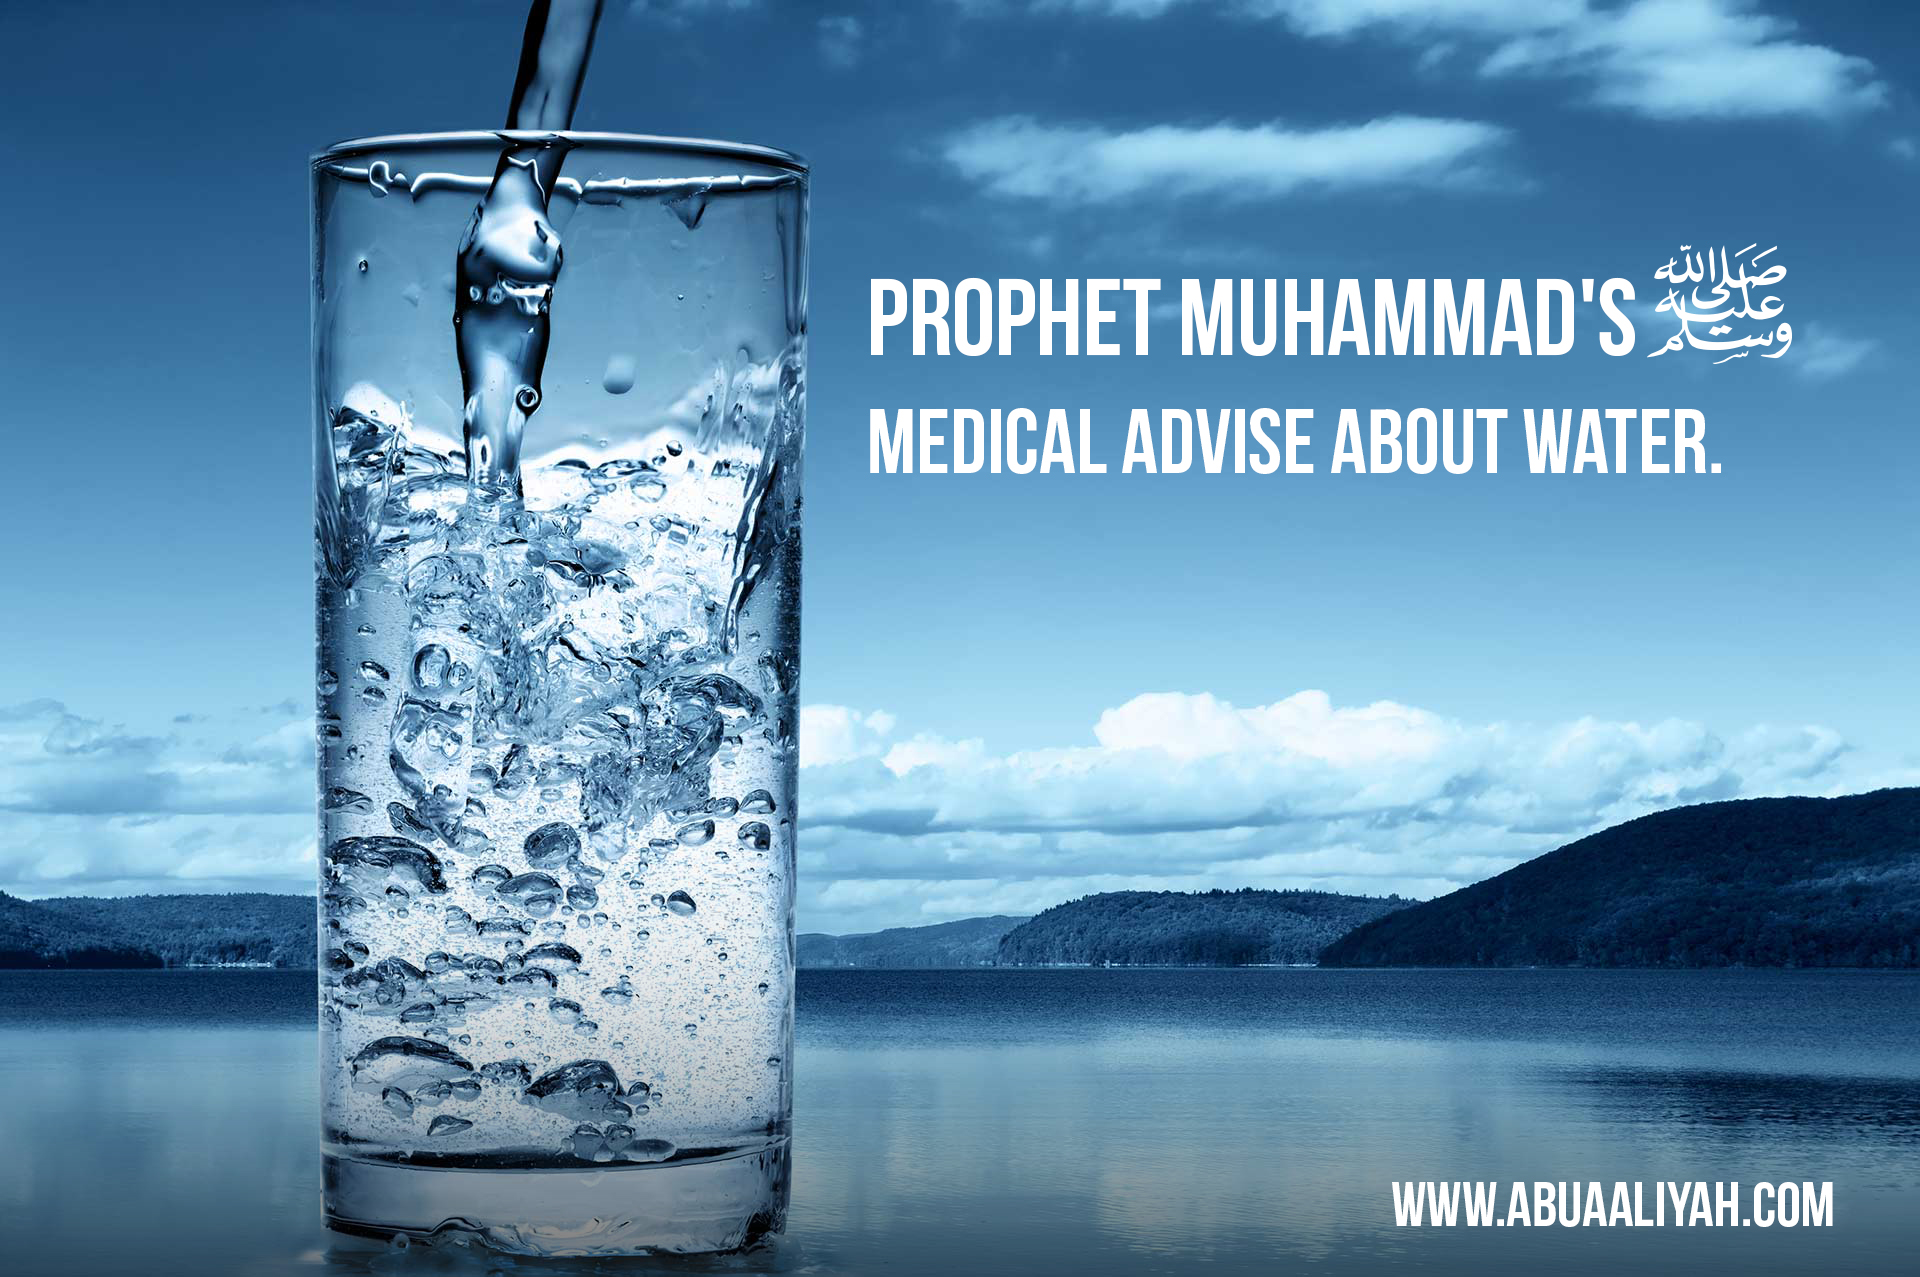 Prophet Muhammad s ï·º Medical Advice about Water